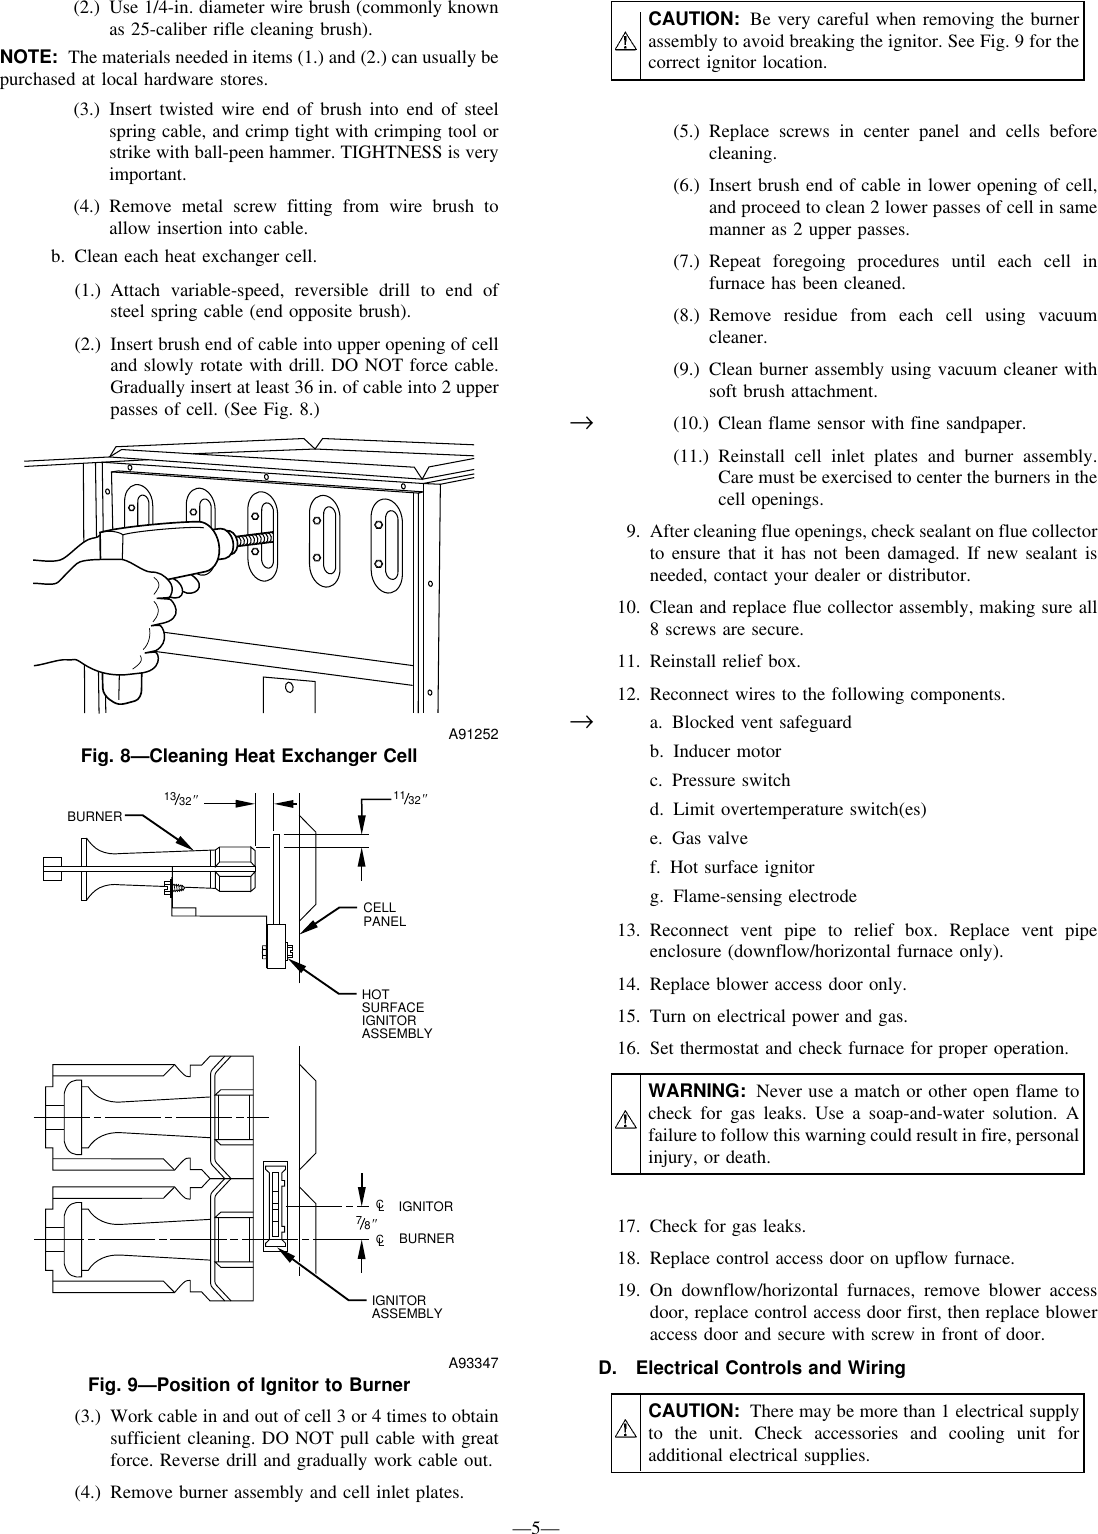 Bryant 3 383kav Users Manual Gas Furnace Ignitor Replacement Schematics Page 5 Of 12